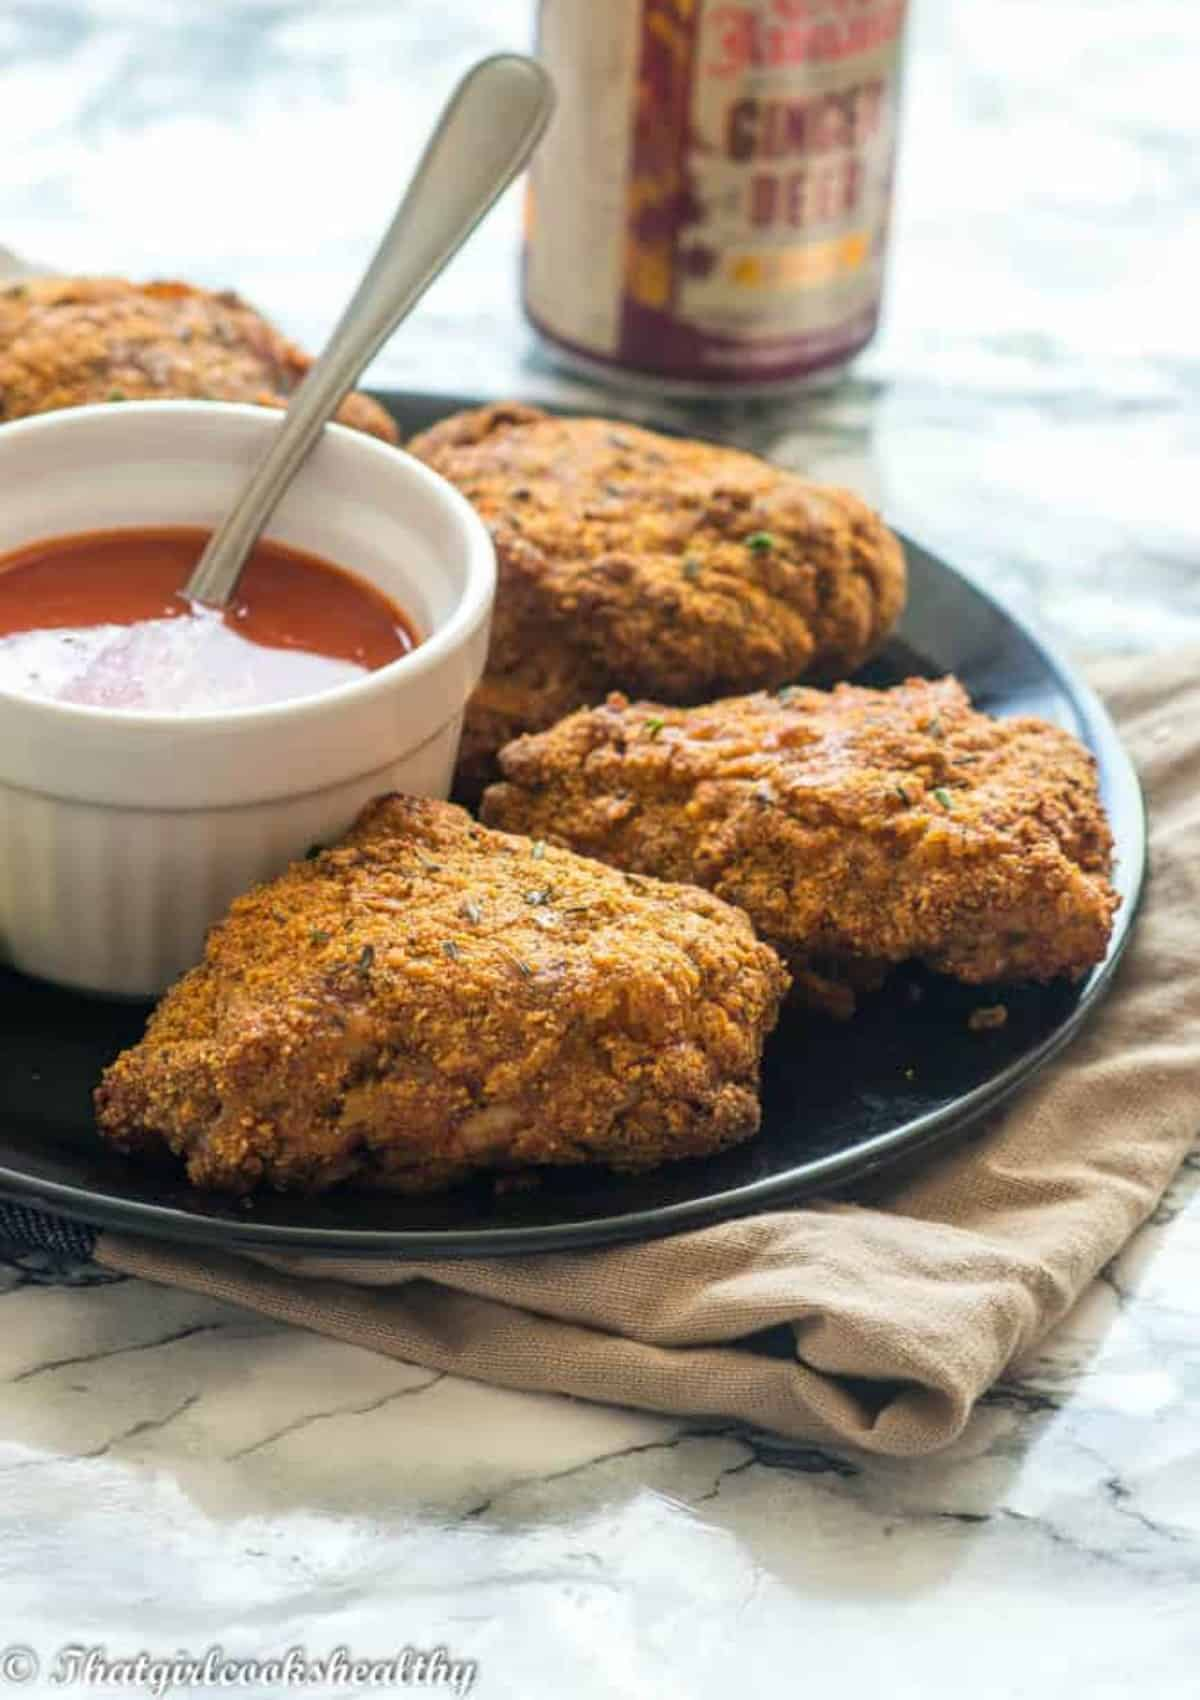 fried chicken with soda